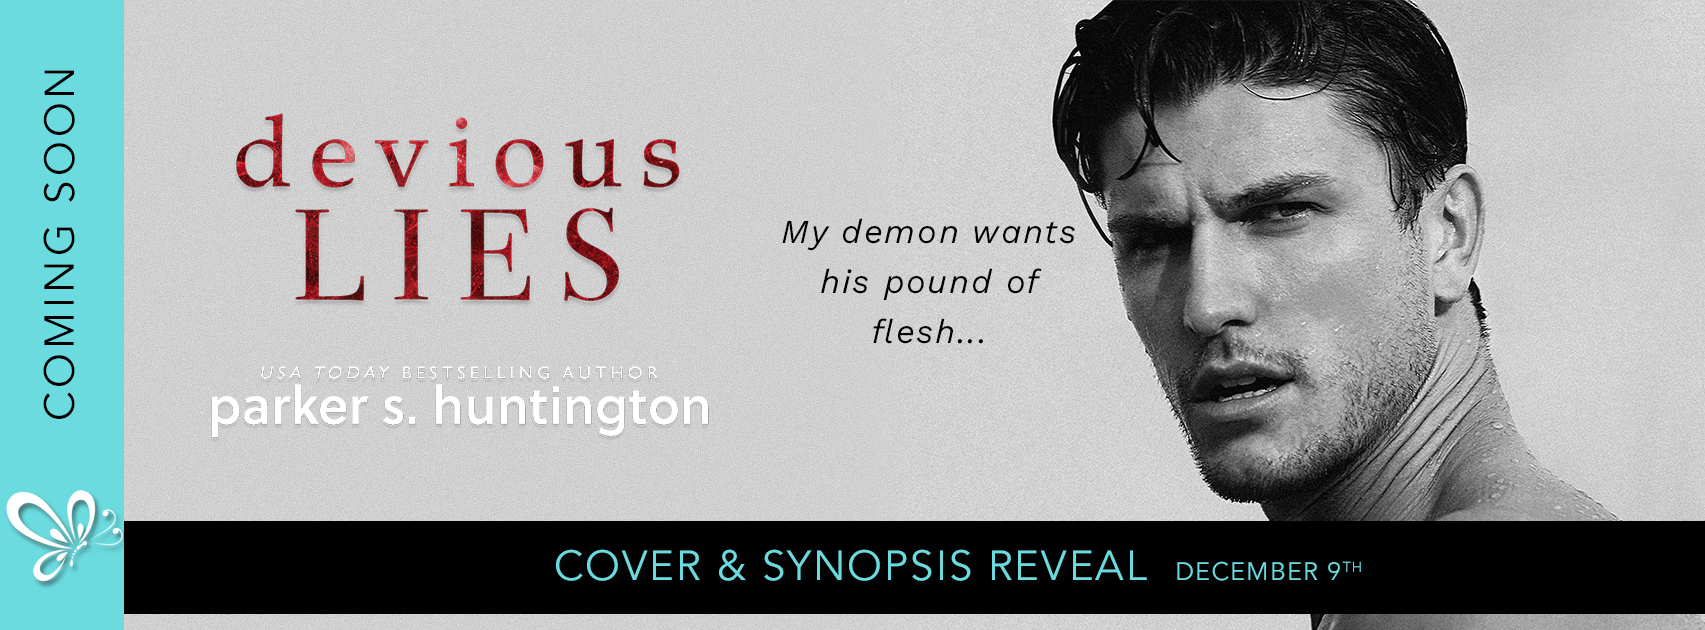 Devious Lies - CR banner